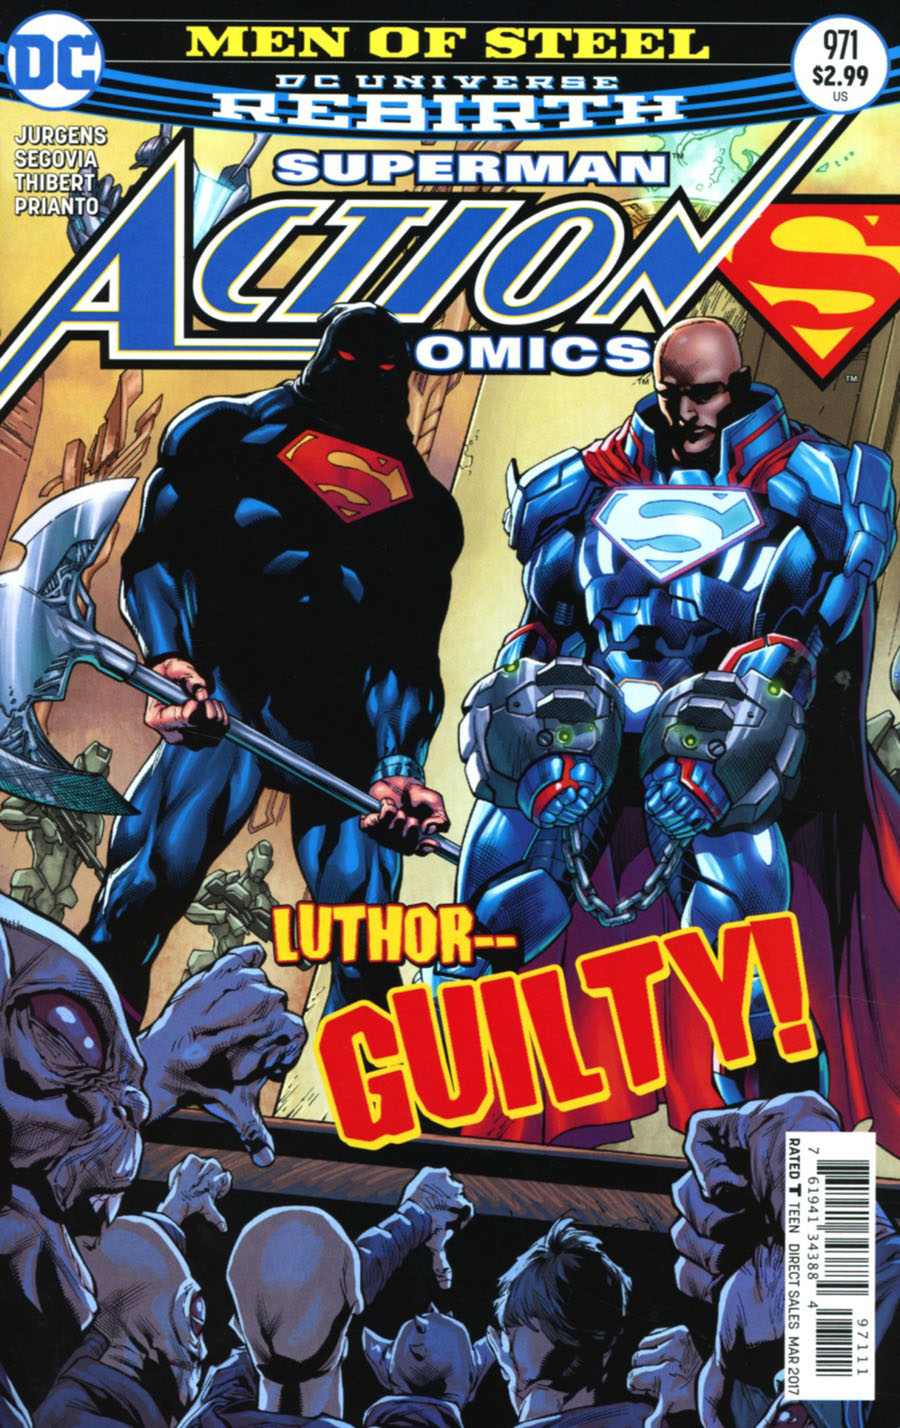 Action Comics Vol 2 #971 Cover A Regular Stephen Segovia & Art Thibert Cover